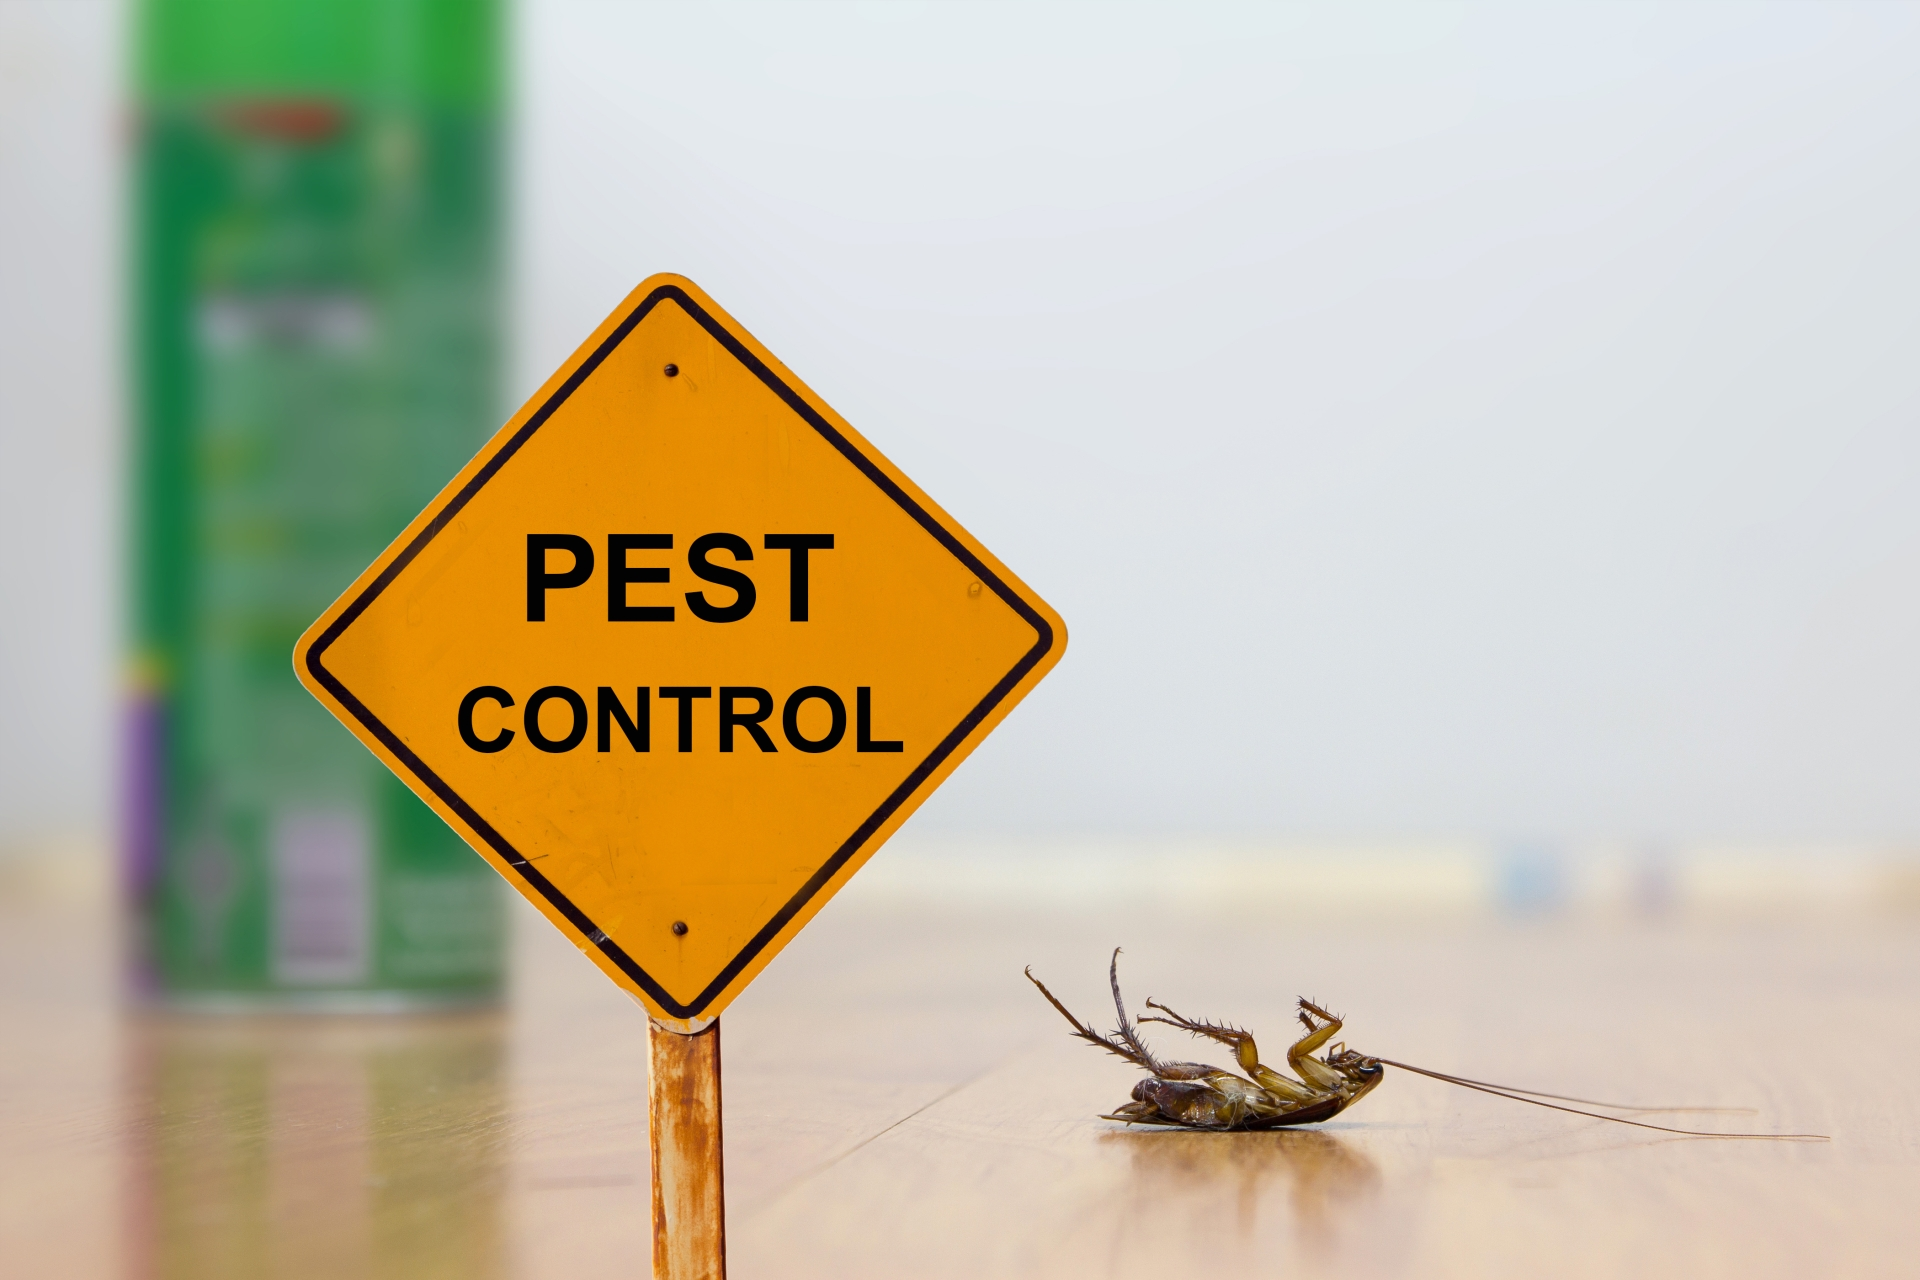 24 Hour Pest Control, Pest Control in Parson's Green, SW6. Call Now 020 8166 9746